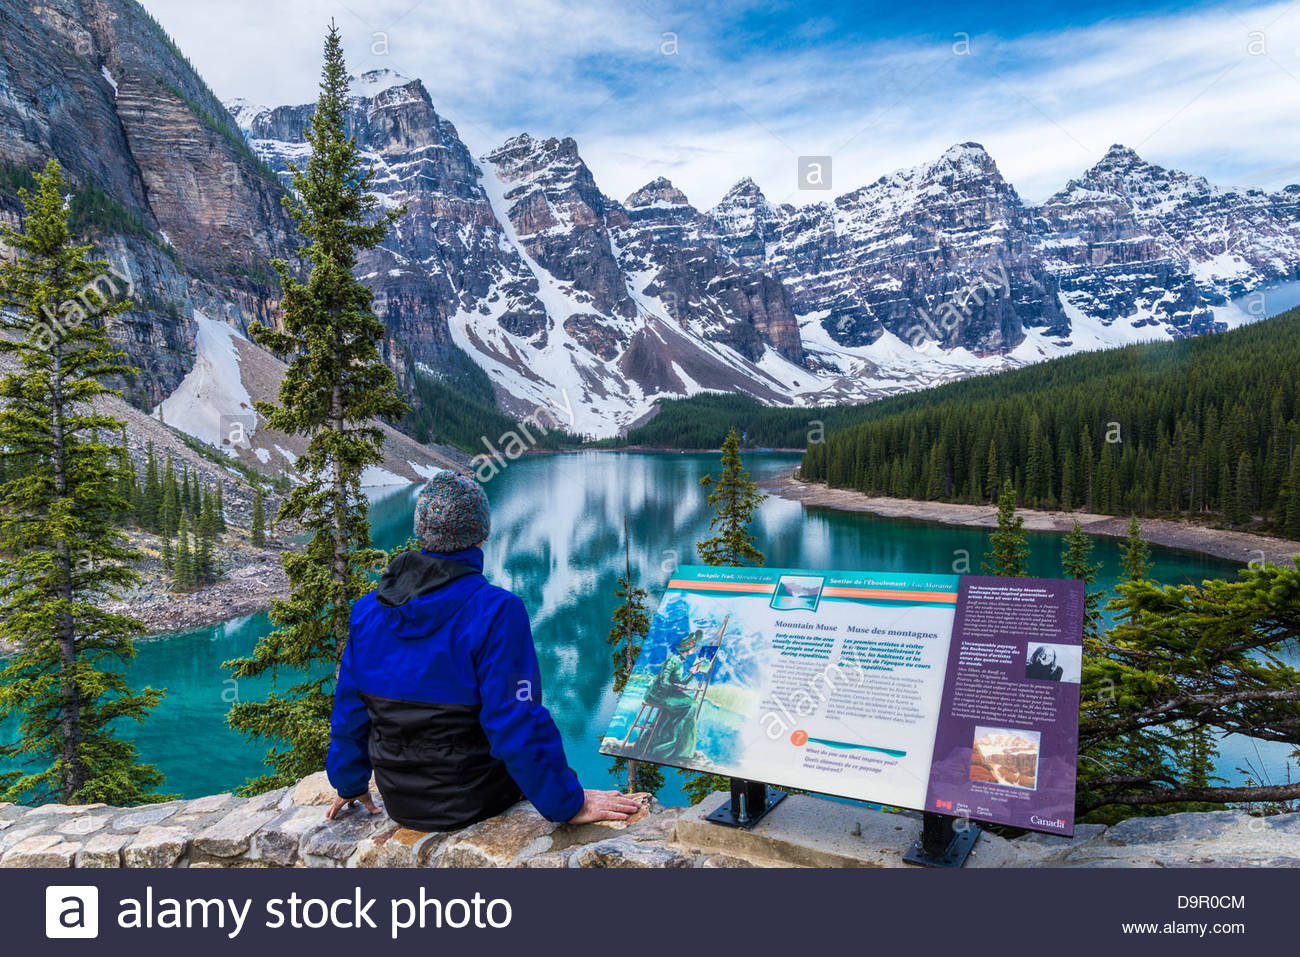 Man at Moraine Lake viewpoint, Banff National Park, Alberta, Canada (self-released) - Stock Image